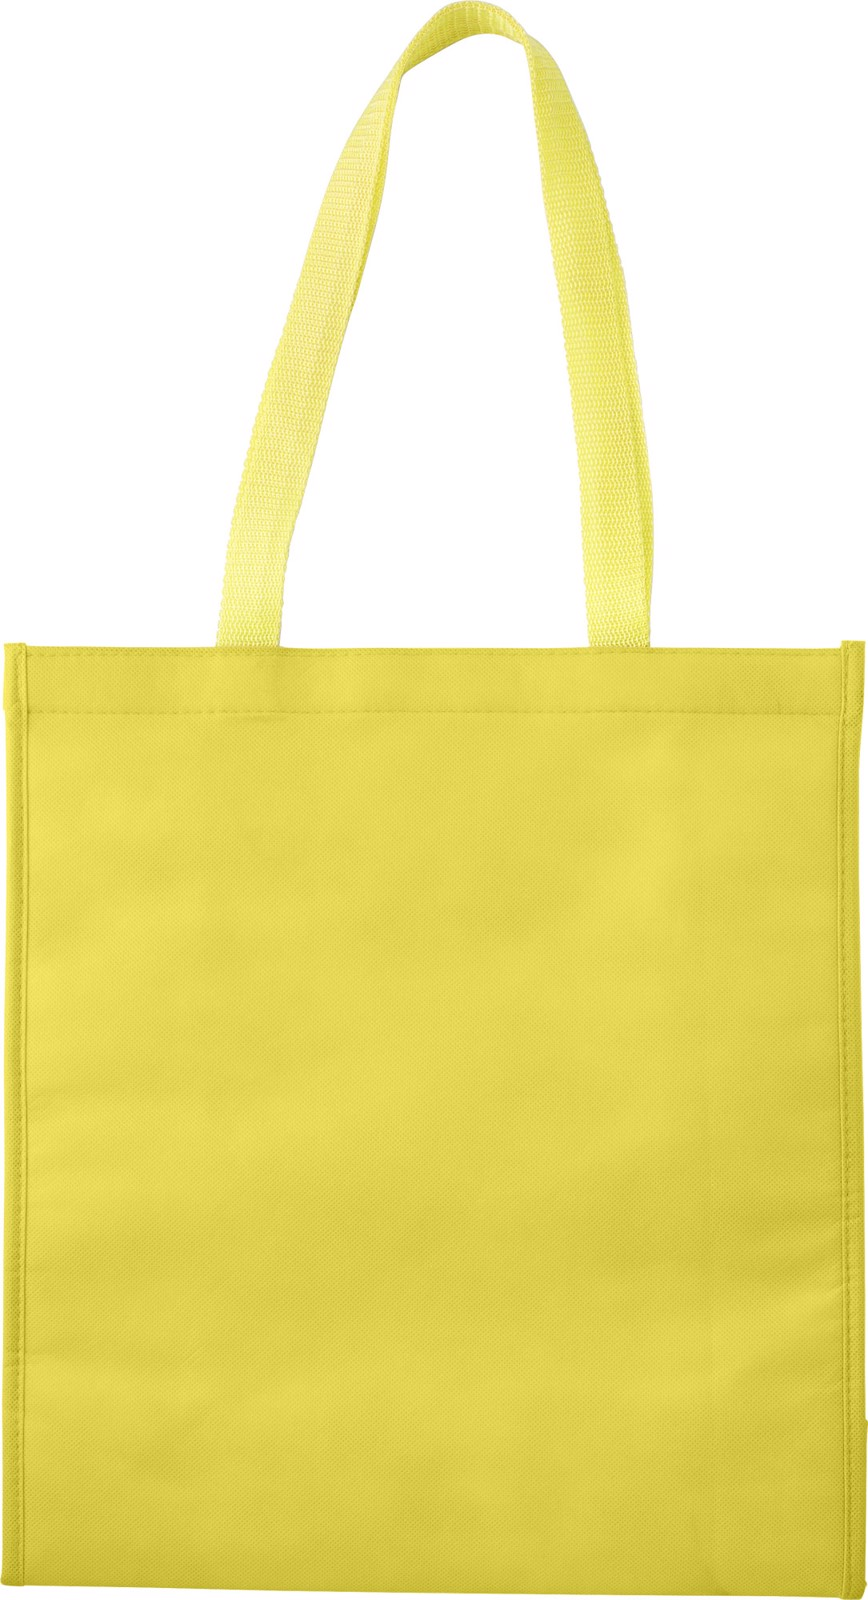 Nonwoven (80gr/m²) cooling bag - Yellow